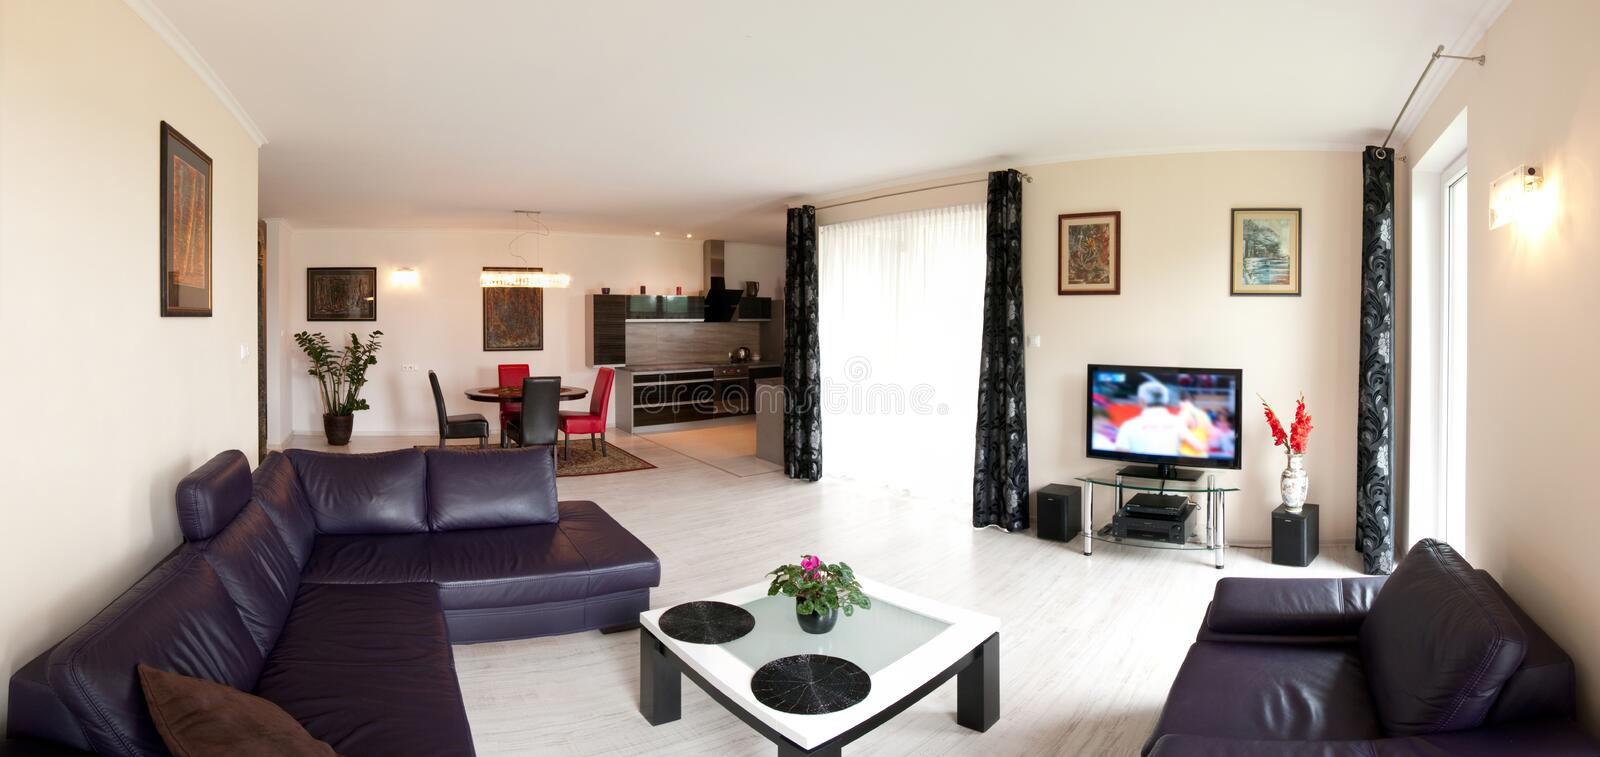 Modern home interior. Interior of modern home with leather furniture and white walls stock photography